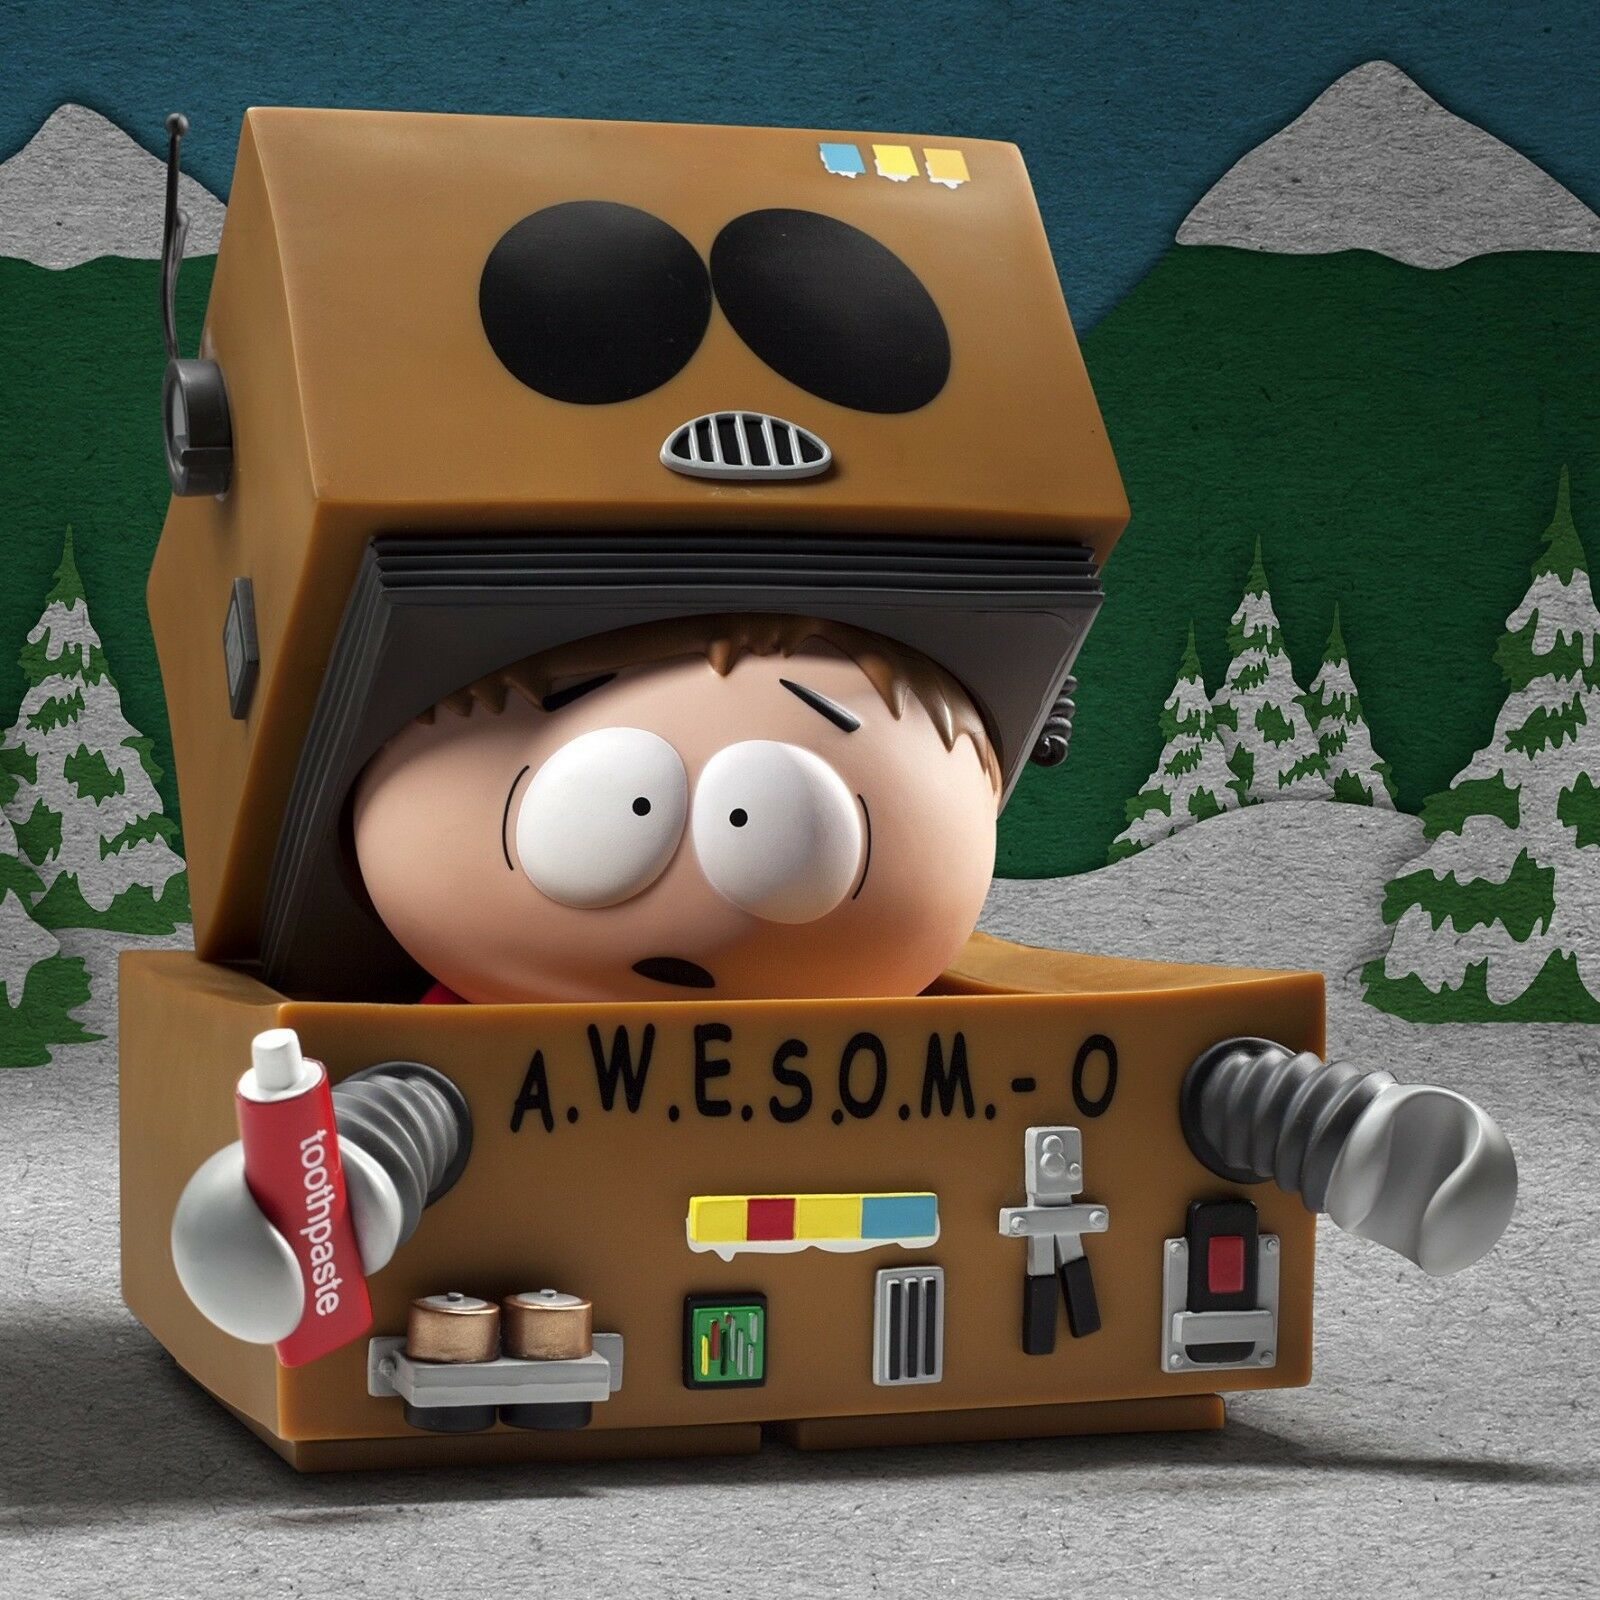 Kidrobot South Park Cartman Awesom-O (Robot) Medium 7